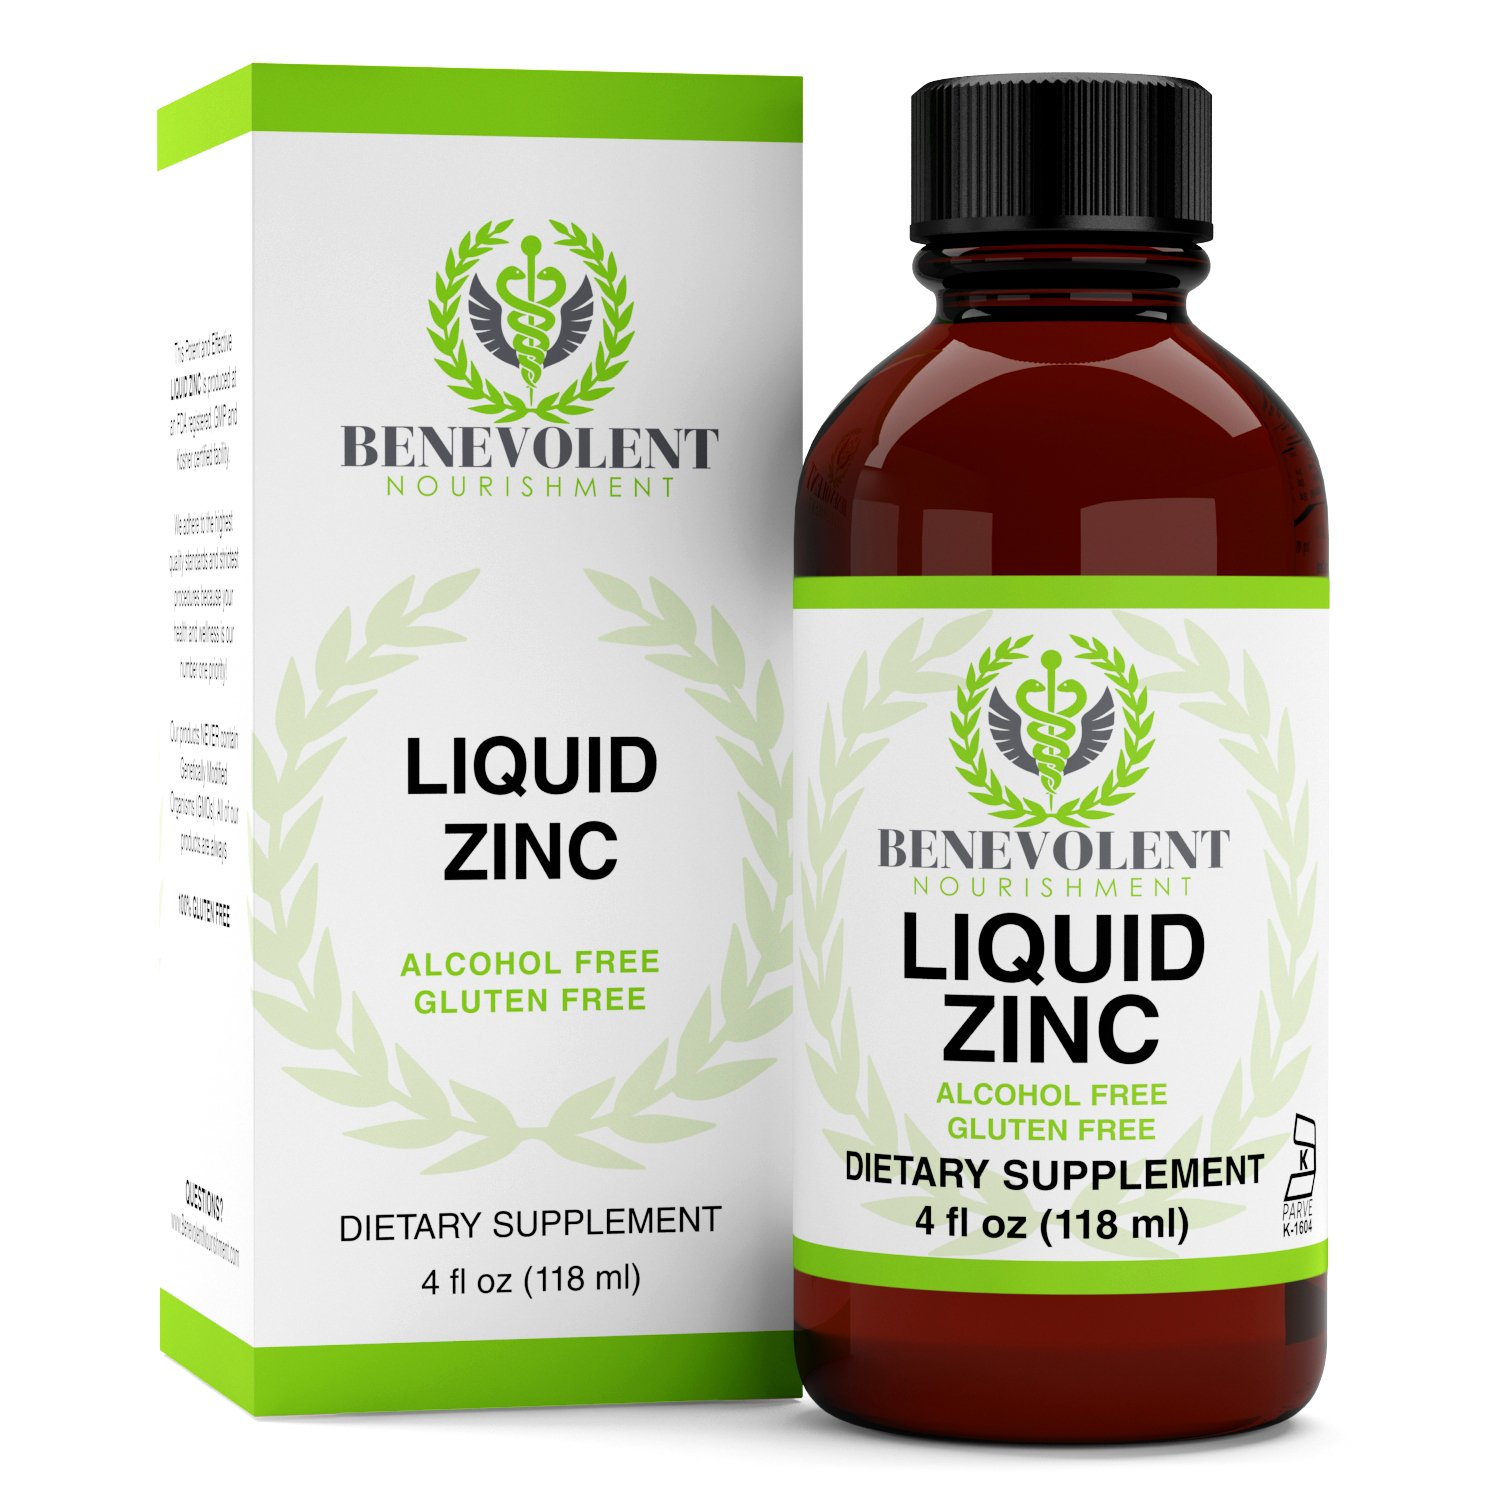 Zinc Supplement with Organic Elderberry Fruit & Herbs - Potent & Effective Liquid Dietary Supplement for Entire Family - 100% Alcohol & Gluten Free - Non GMO Formula. Large 4oz Bottle.